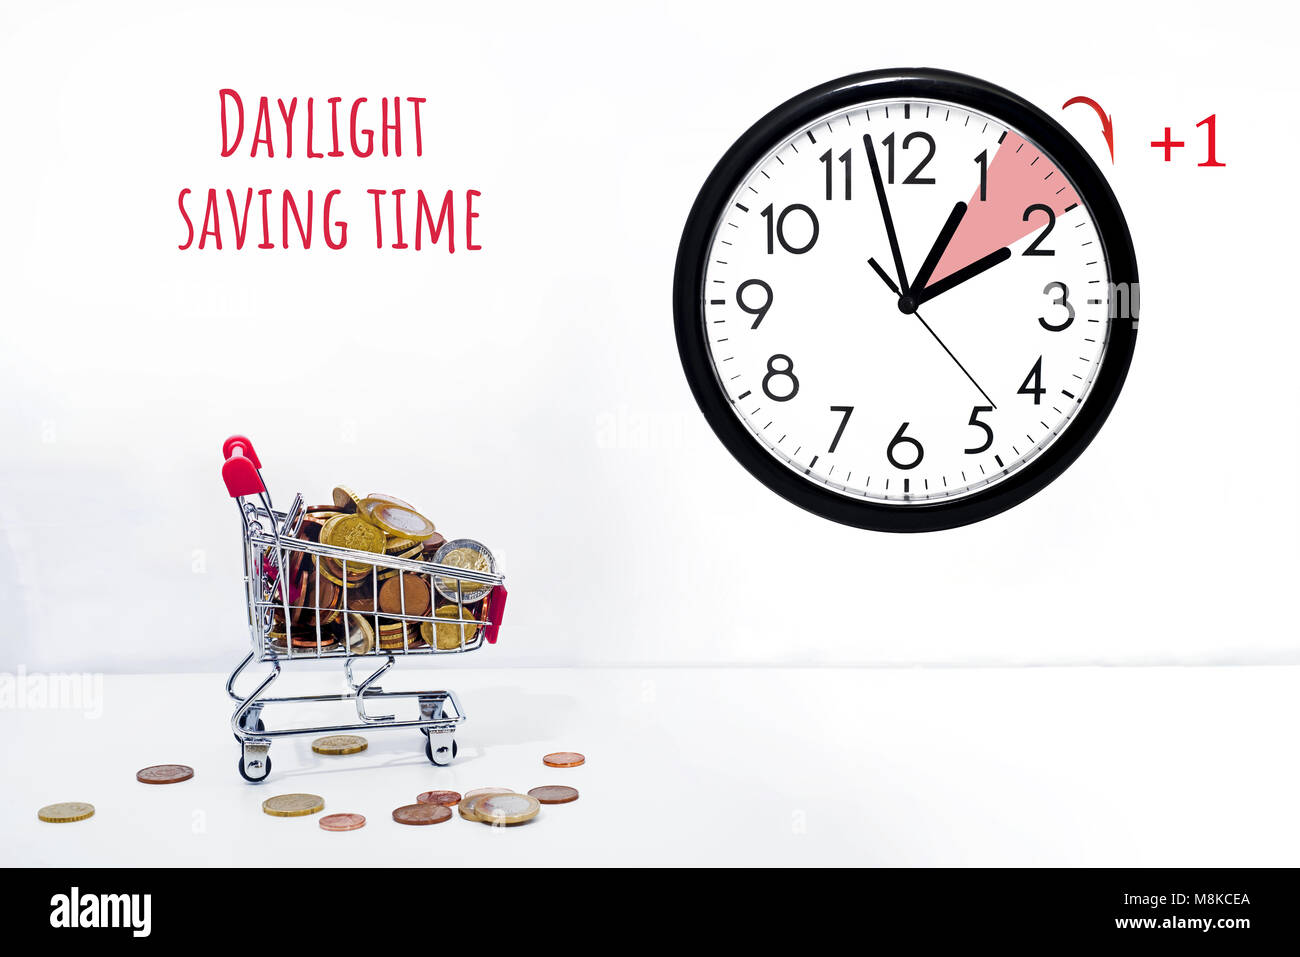 daylight saving time dst wall clock going to winter time turn